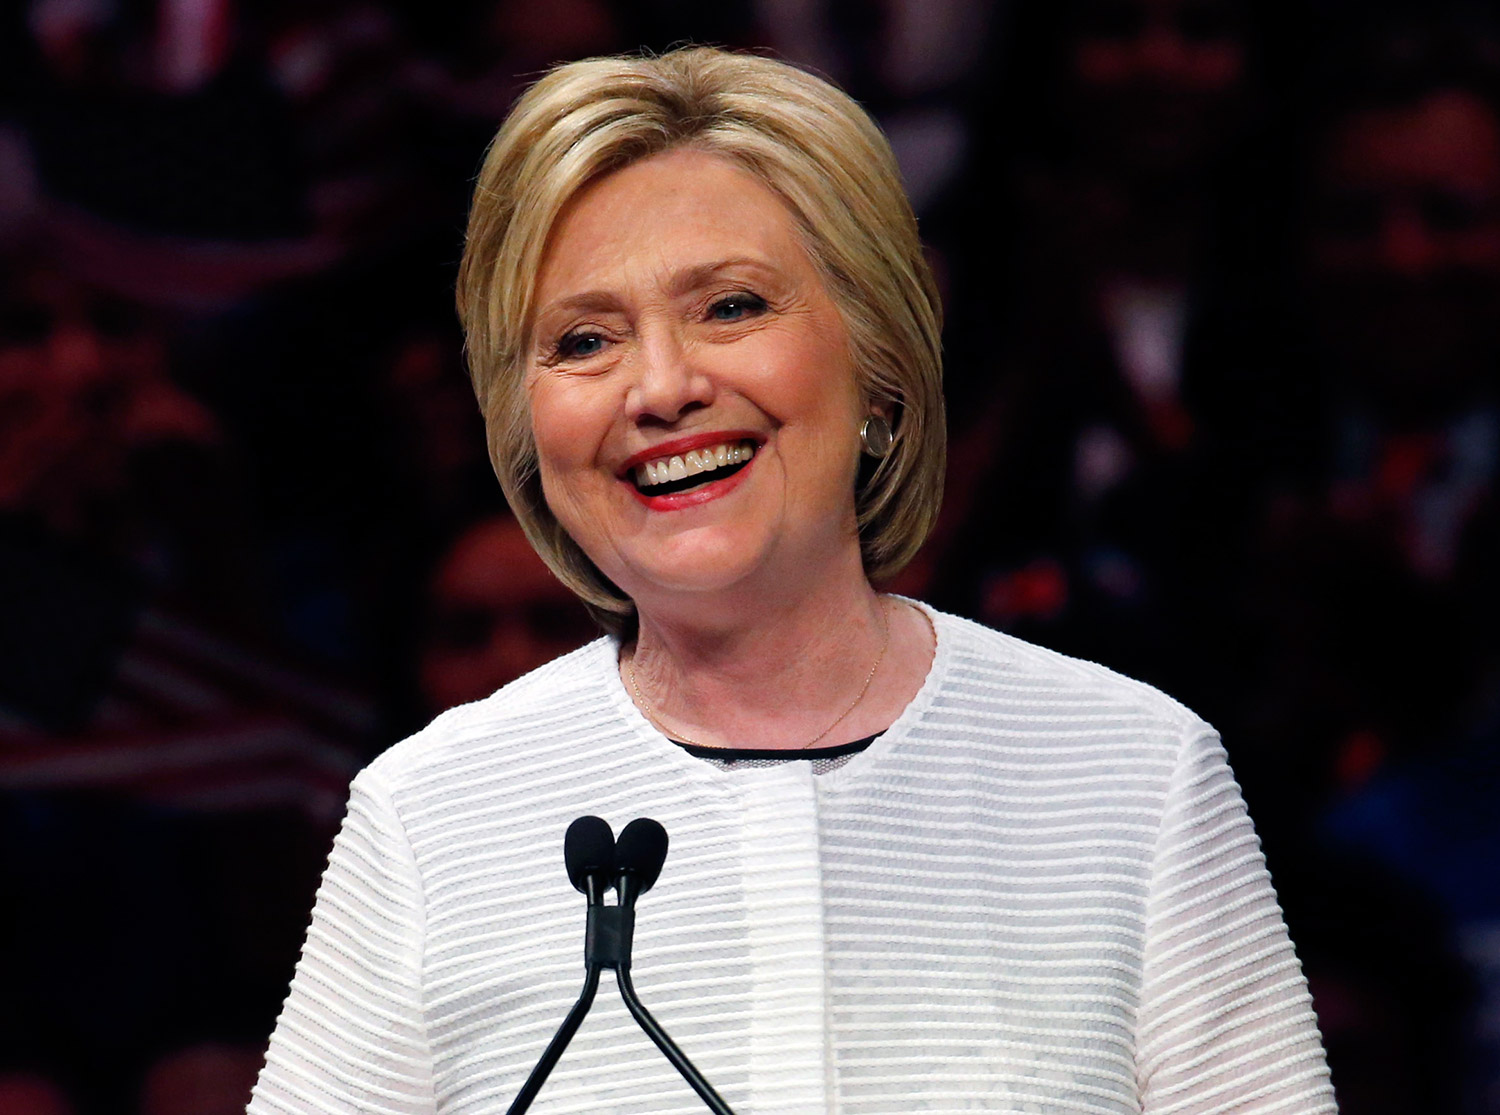 Democratic presidential candidate Hillary Clinton speaks in New York on Tuesday. Powered by a solid triumph in California, Clinton seizes her place in history as the first women to become a presumptive presidential nominee and sets out to unite a fractured party to confront Donald Trump.